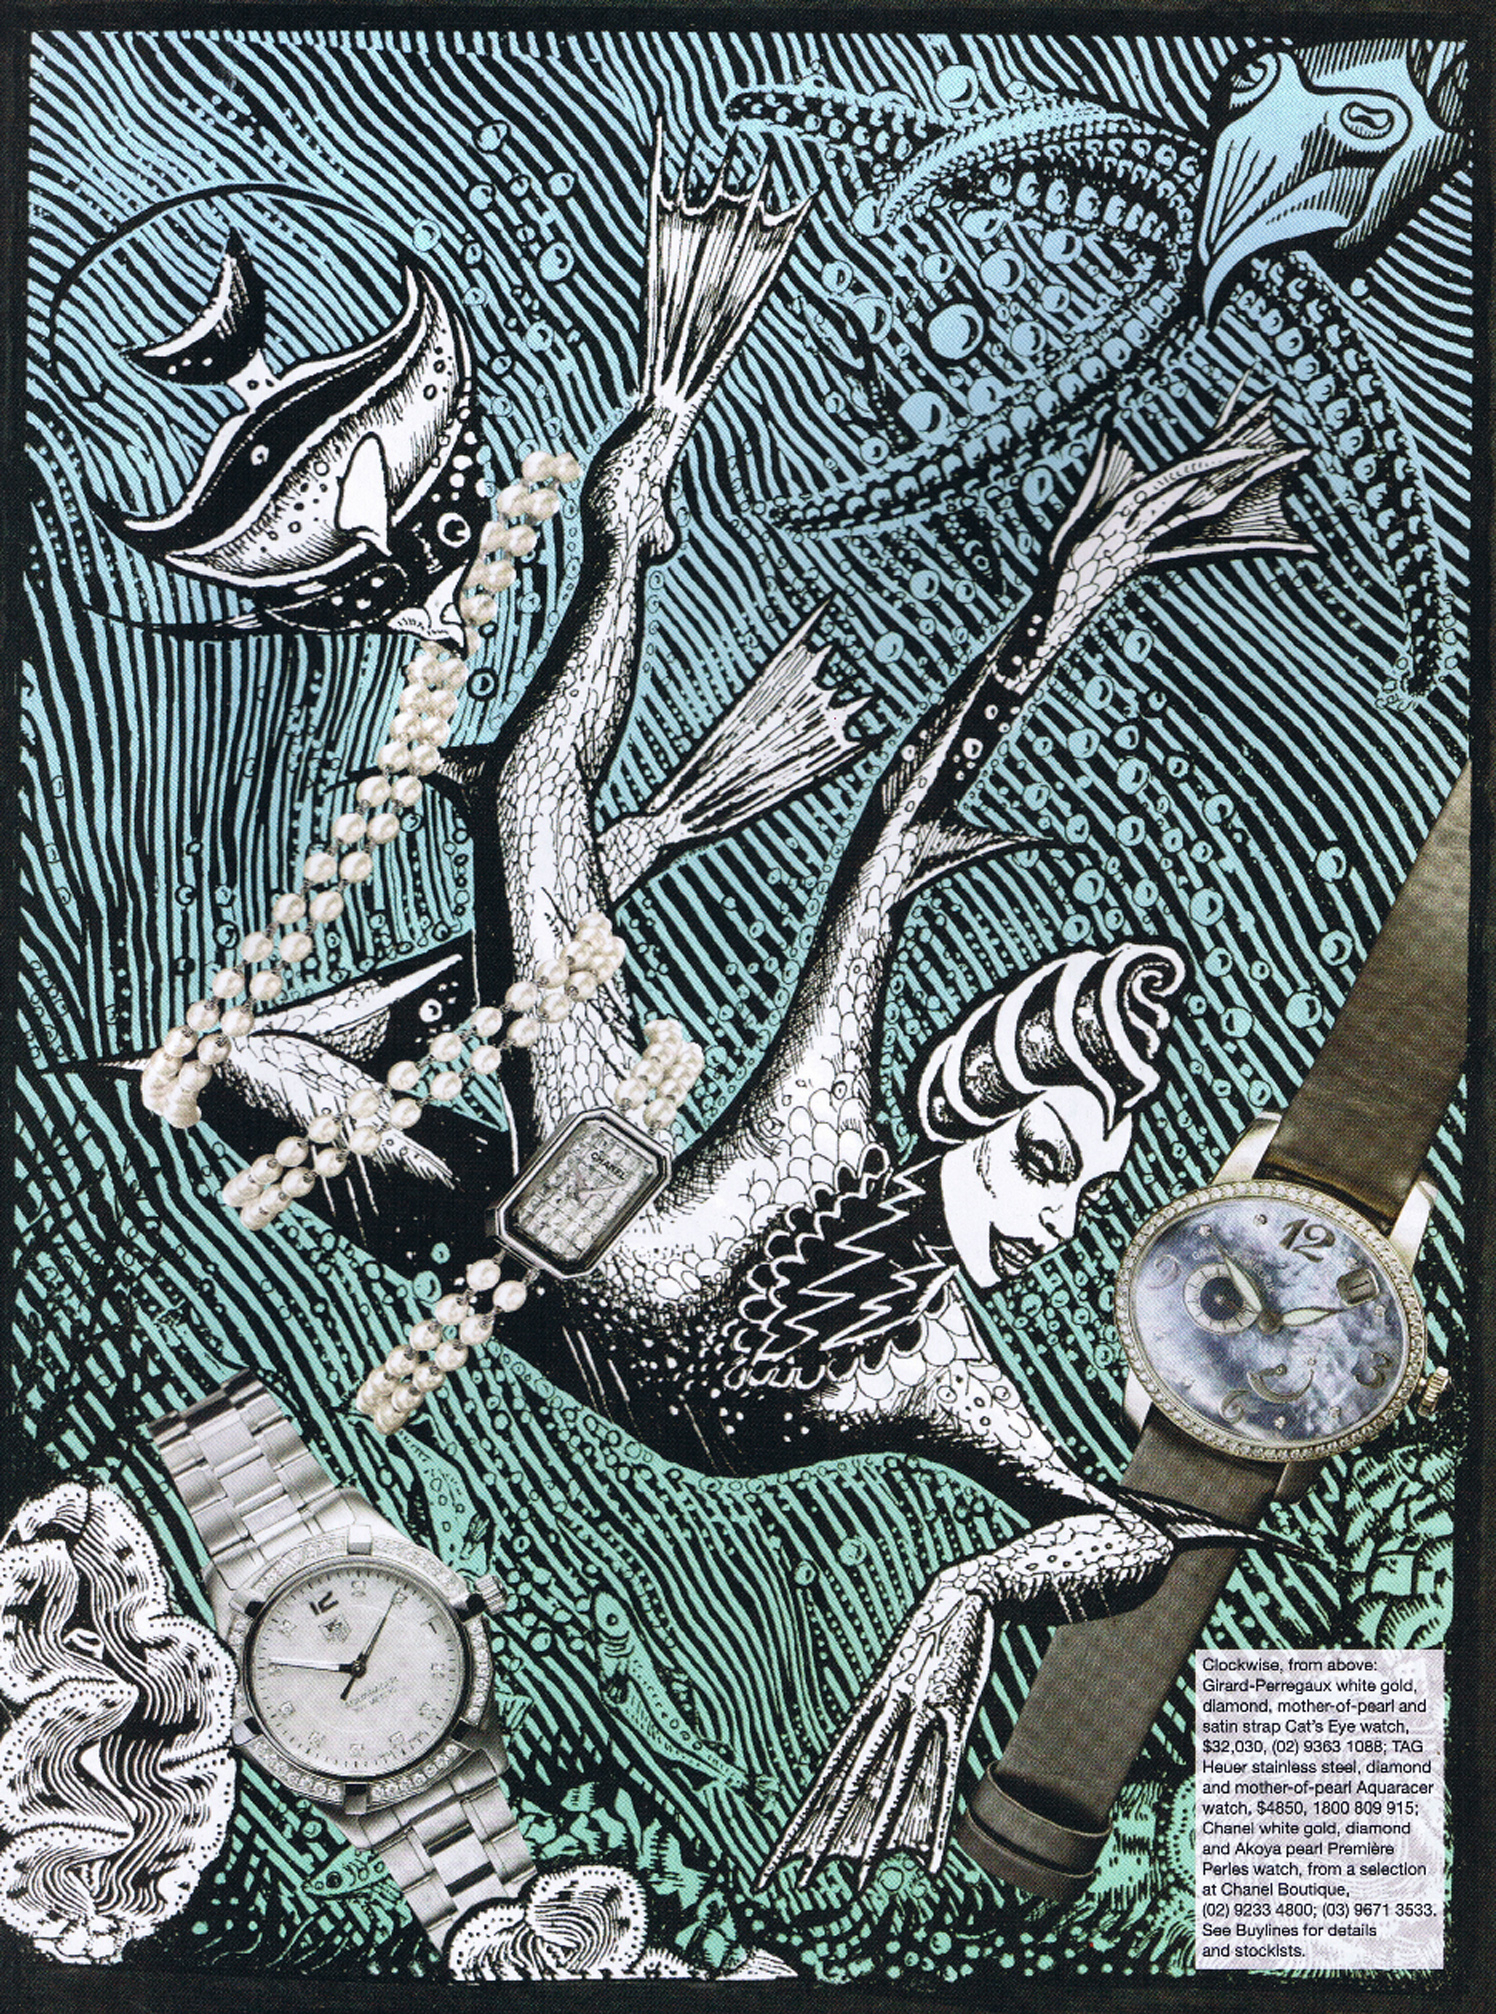 Aqua Girl Watches / Harpers Bazaar